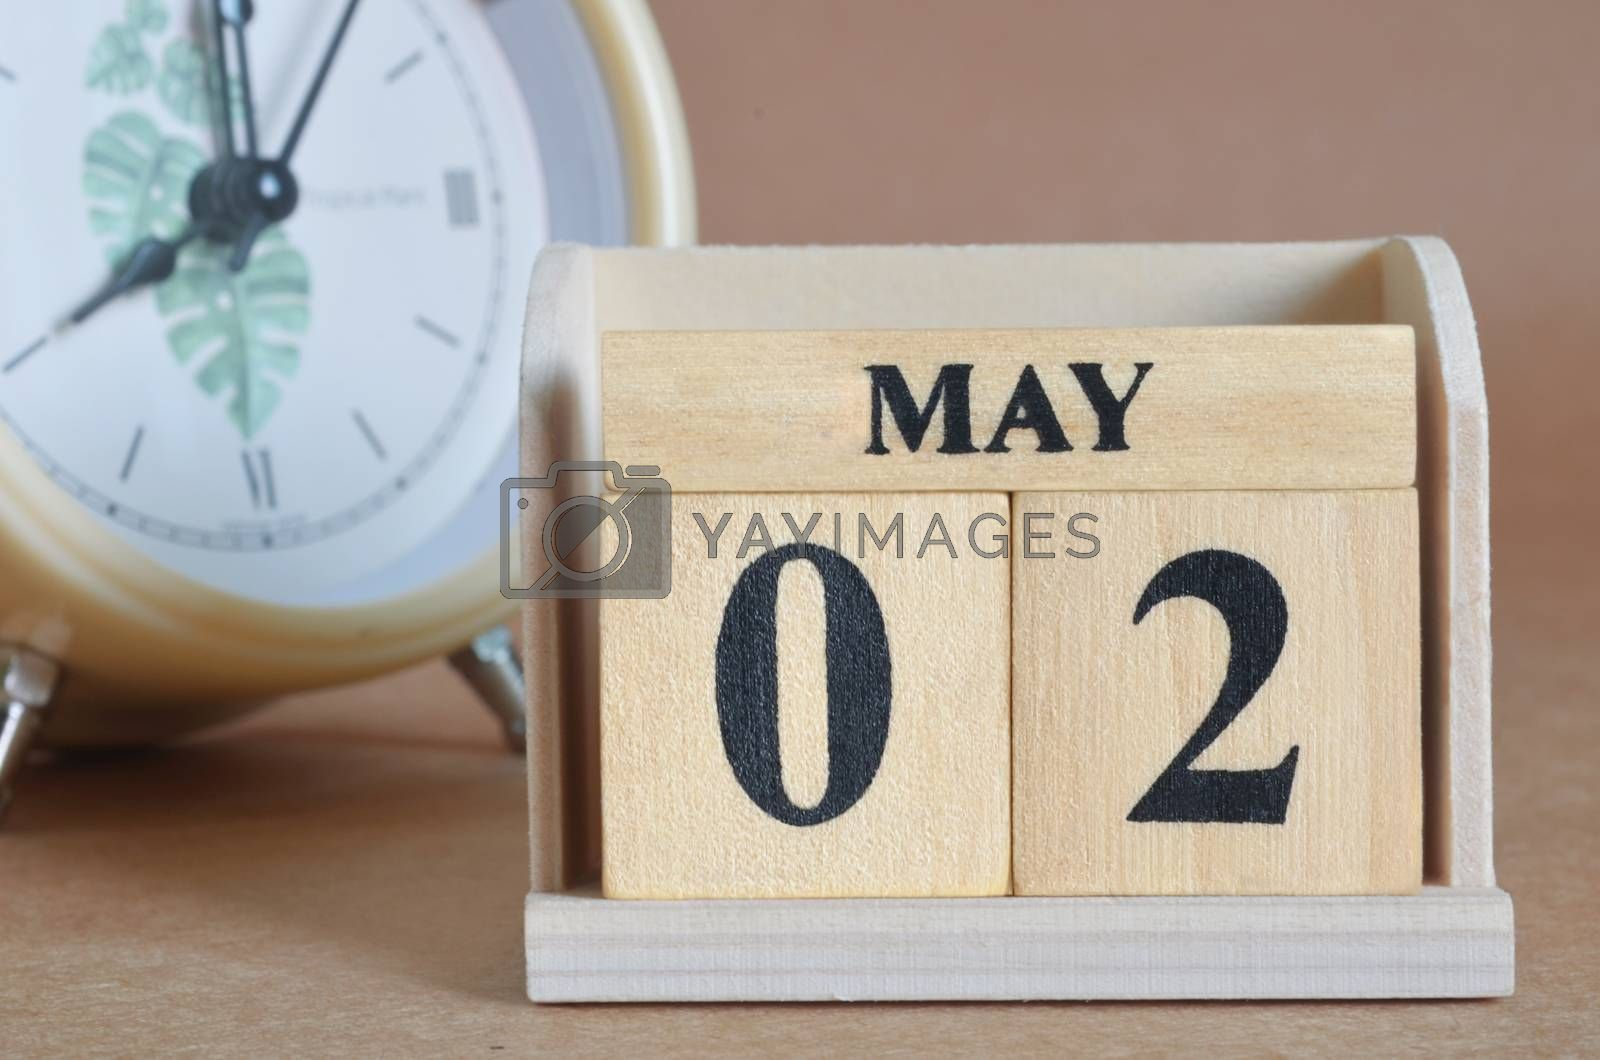 May 2 by Mrfrost